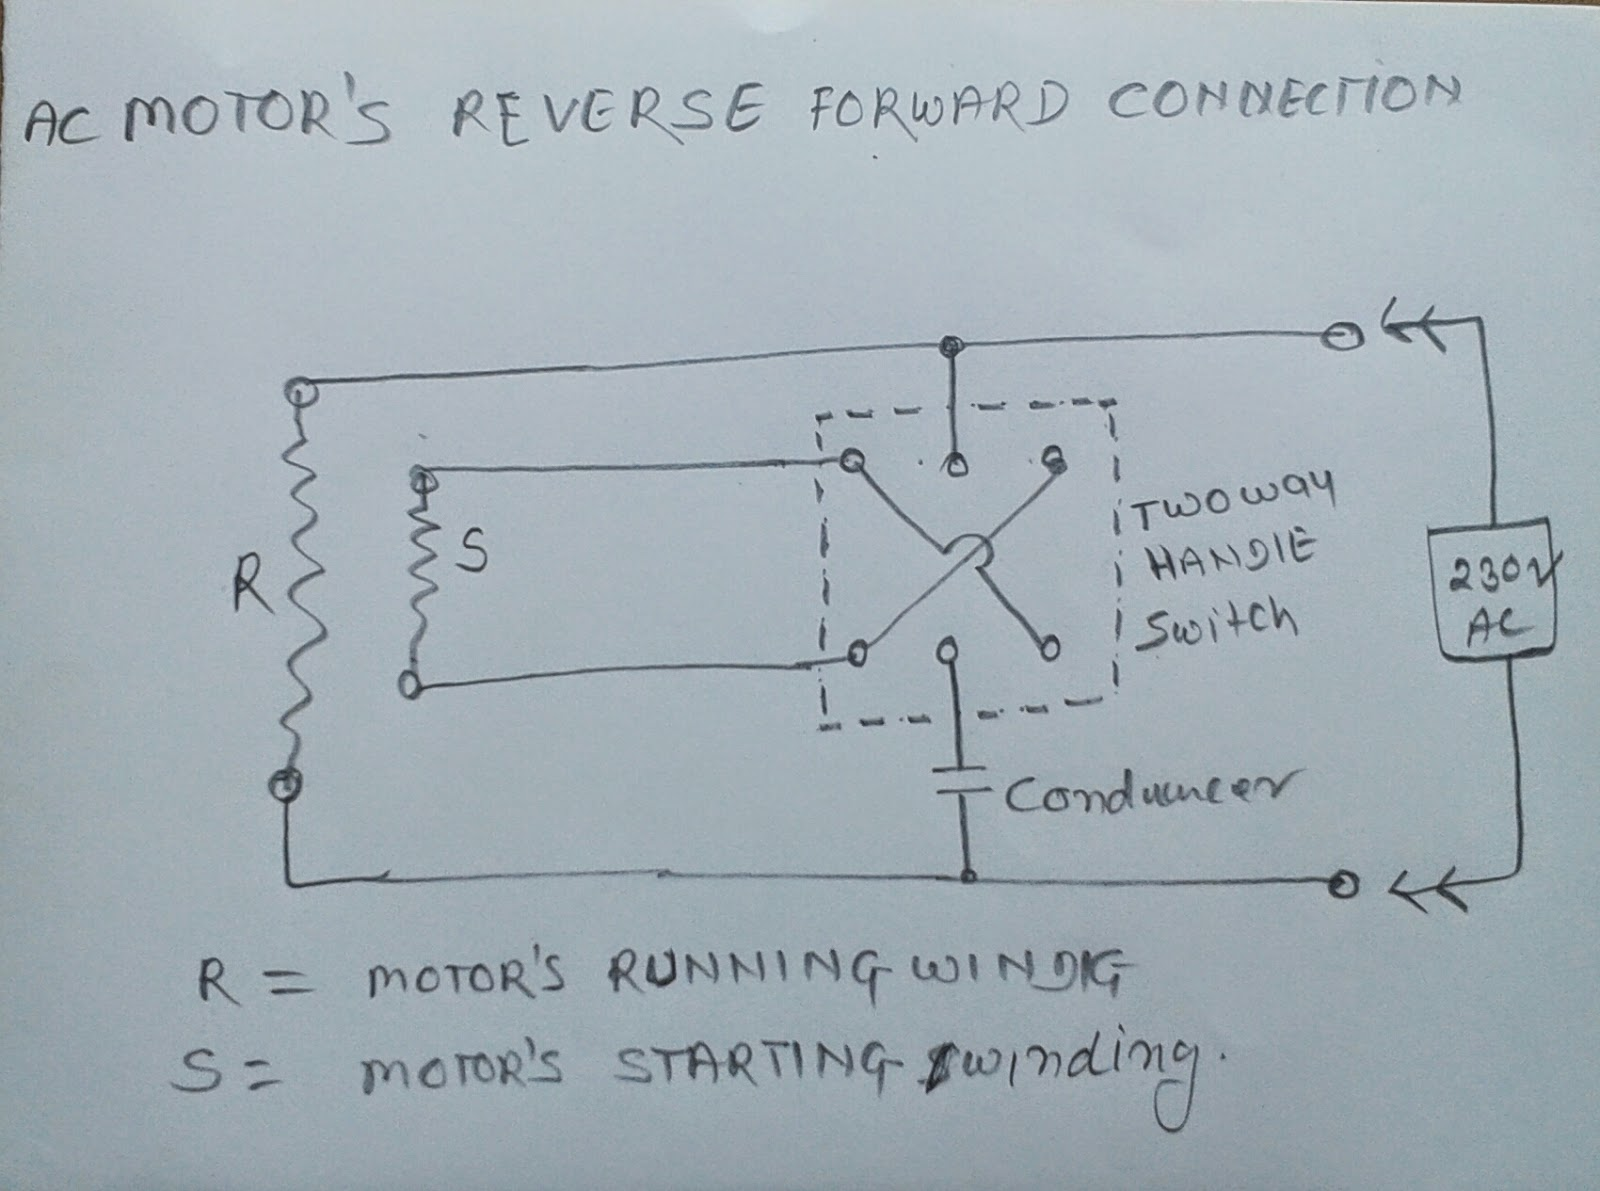 ELECTRIC & ELECTRONICS PROJECT: Ac Motor reverse forward connection